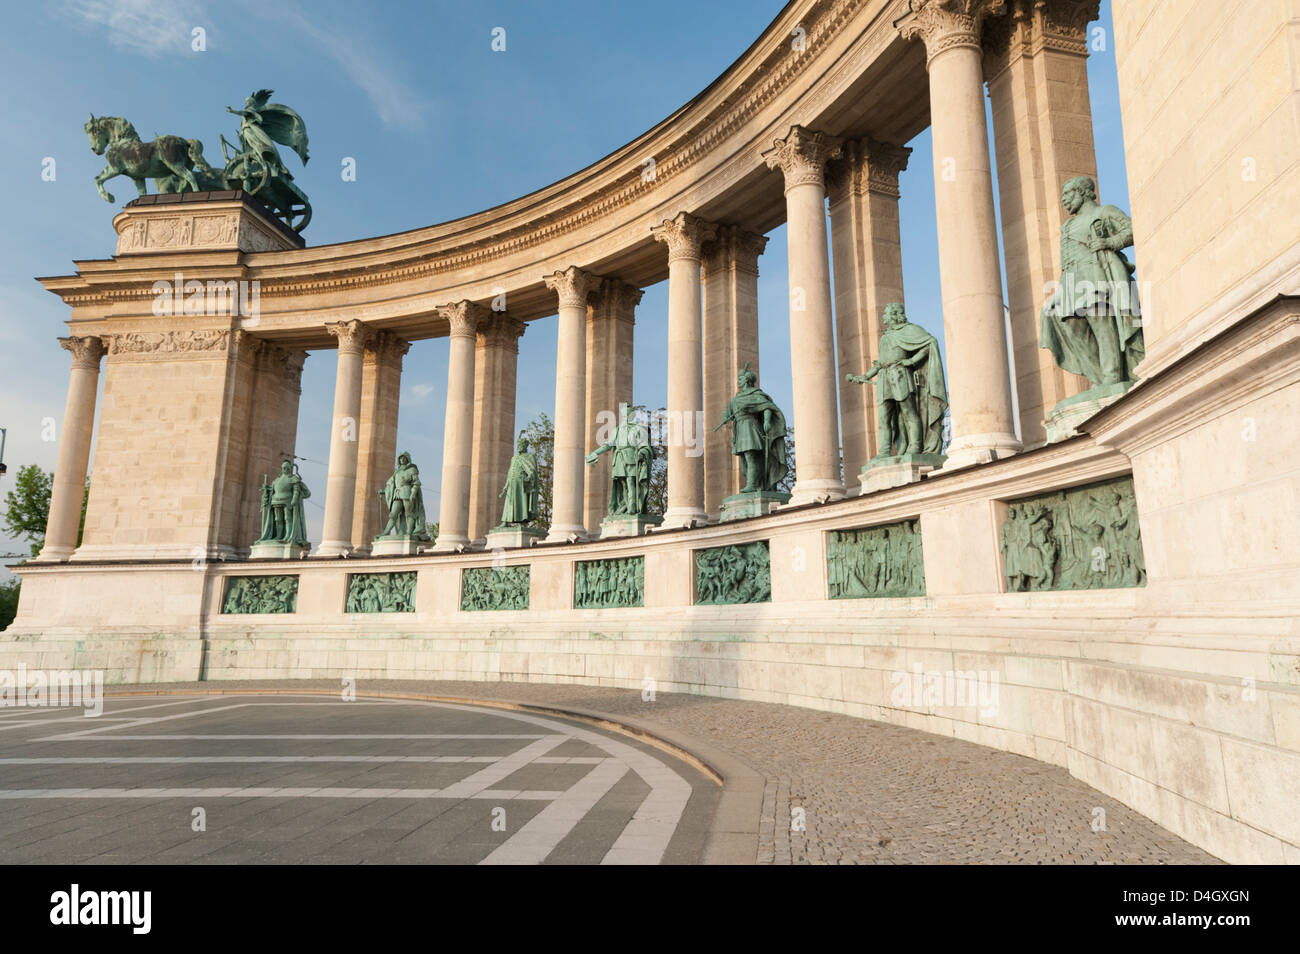 Statues of Hungarian historical leaders, Millennium Monument, Hosok Tere (Heroes Square), Budapest, Hungary - Stock Image